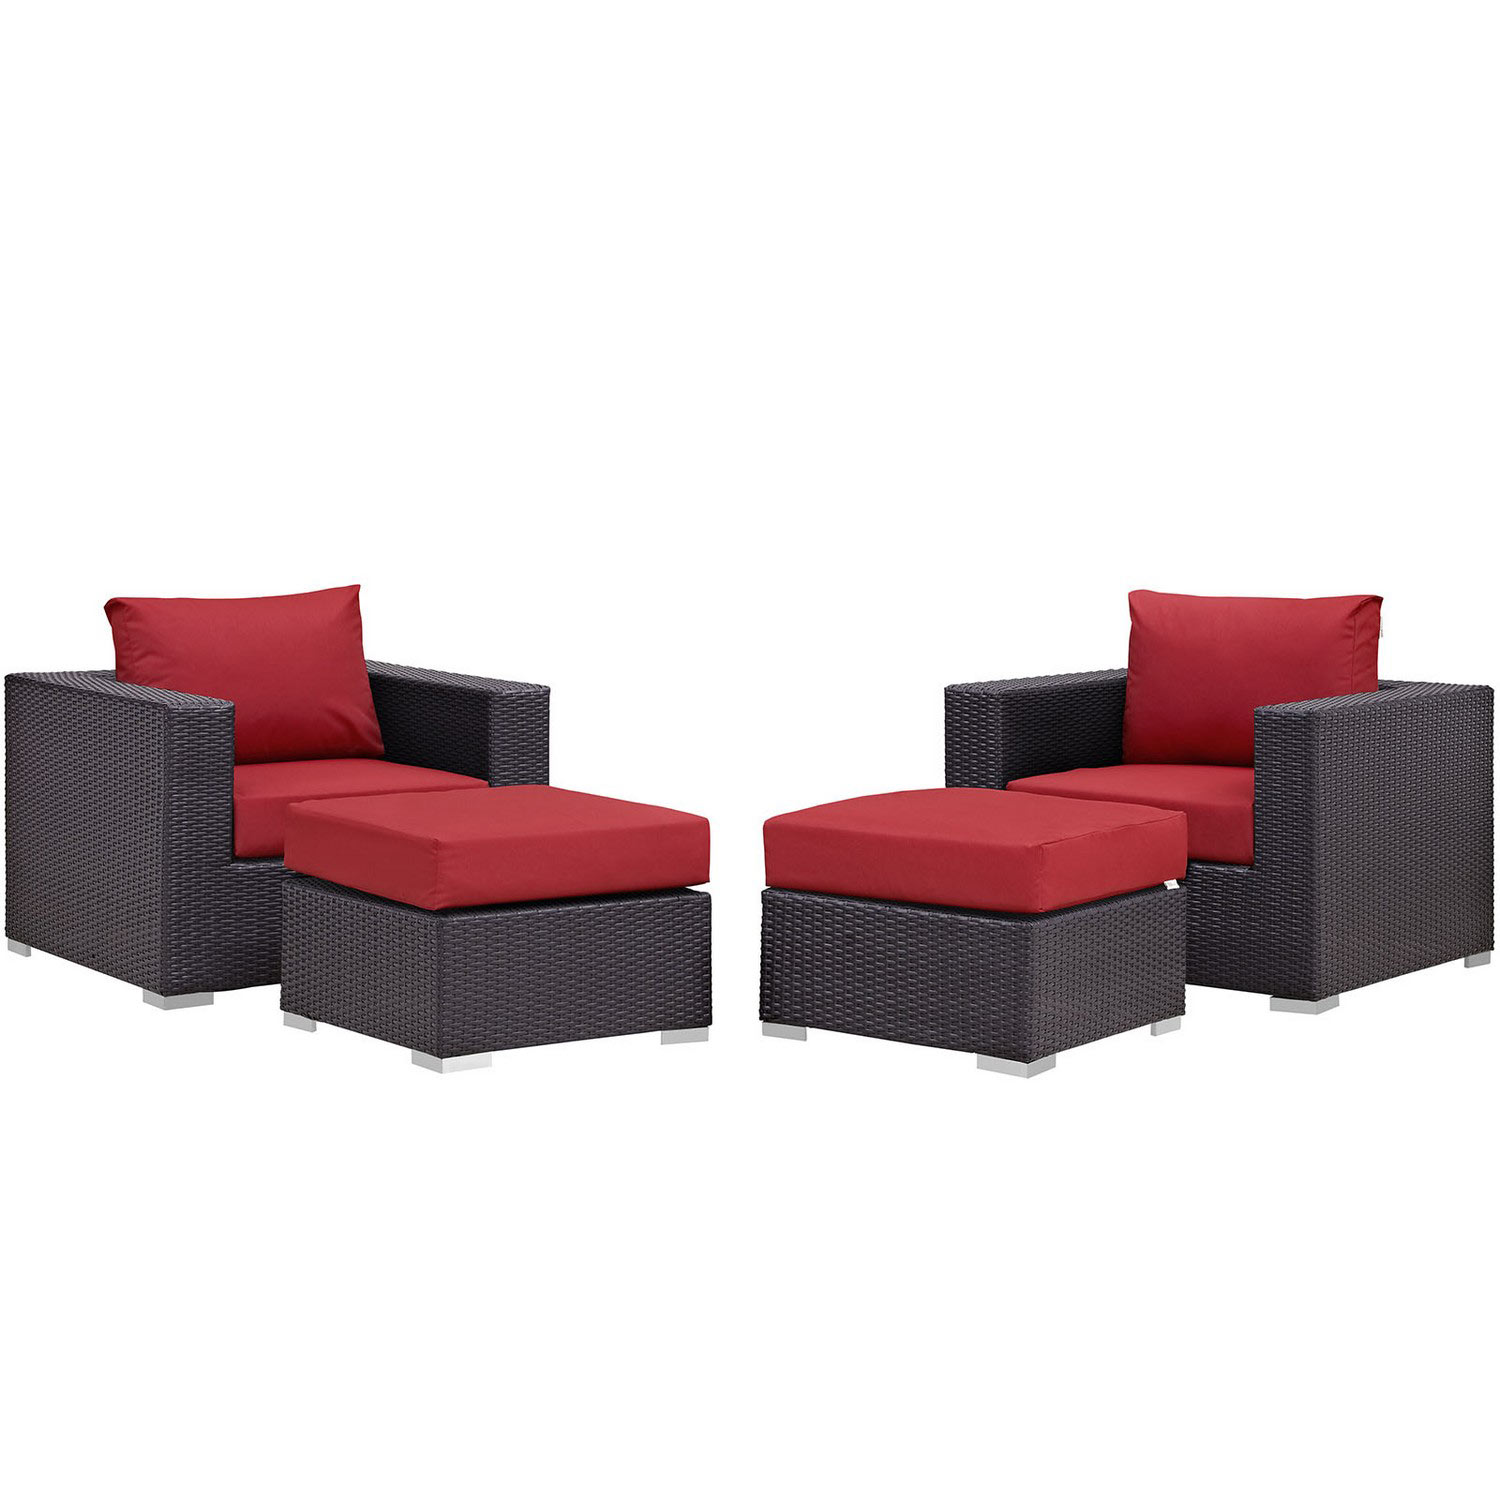 Modway Convene 4 Piece Outdoor Patio Sectional Set - Espresso Red